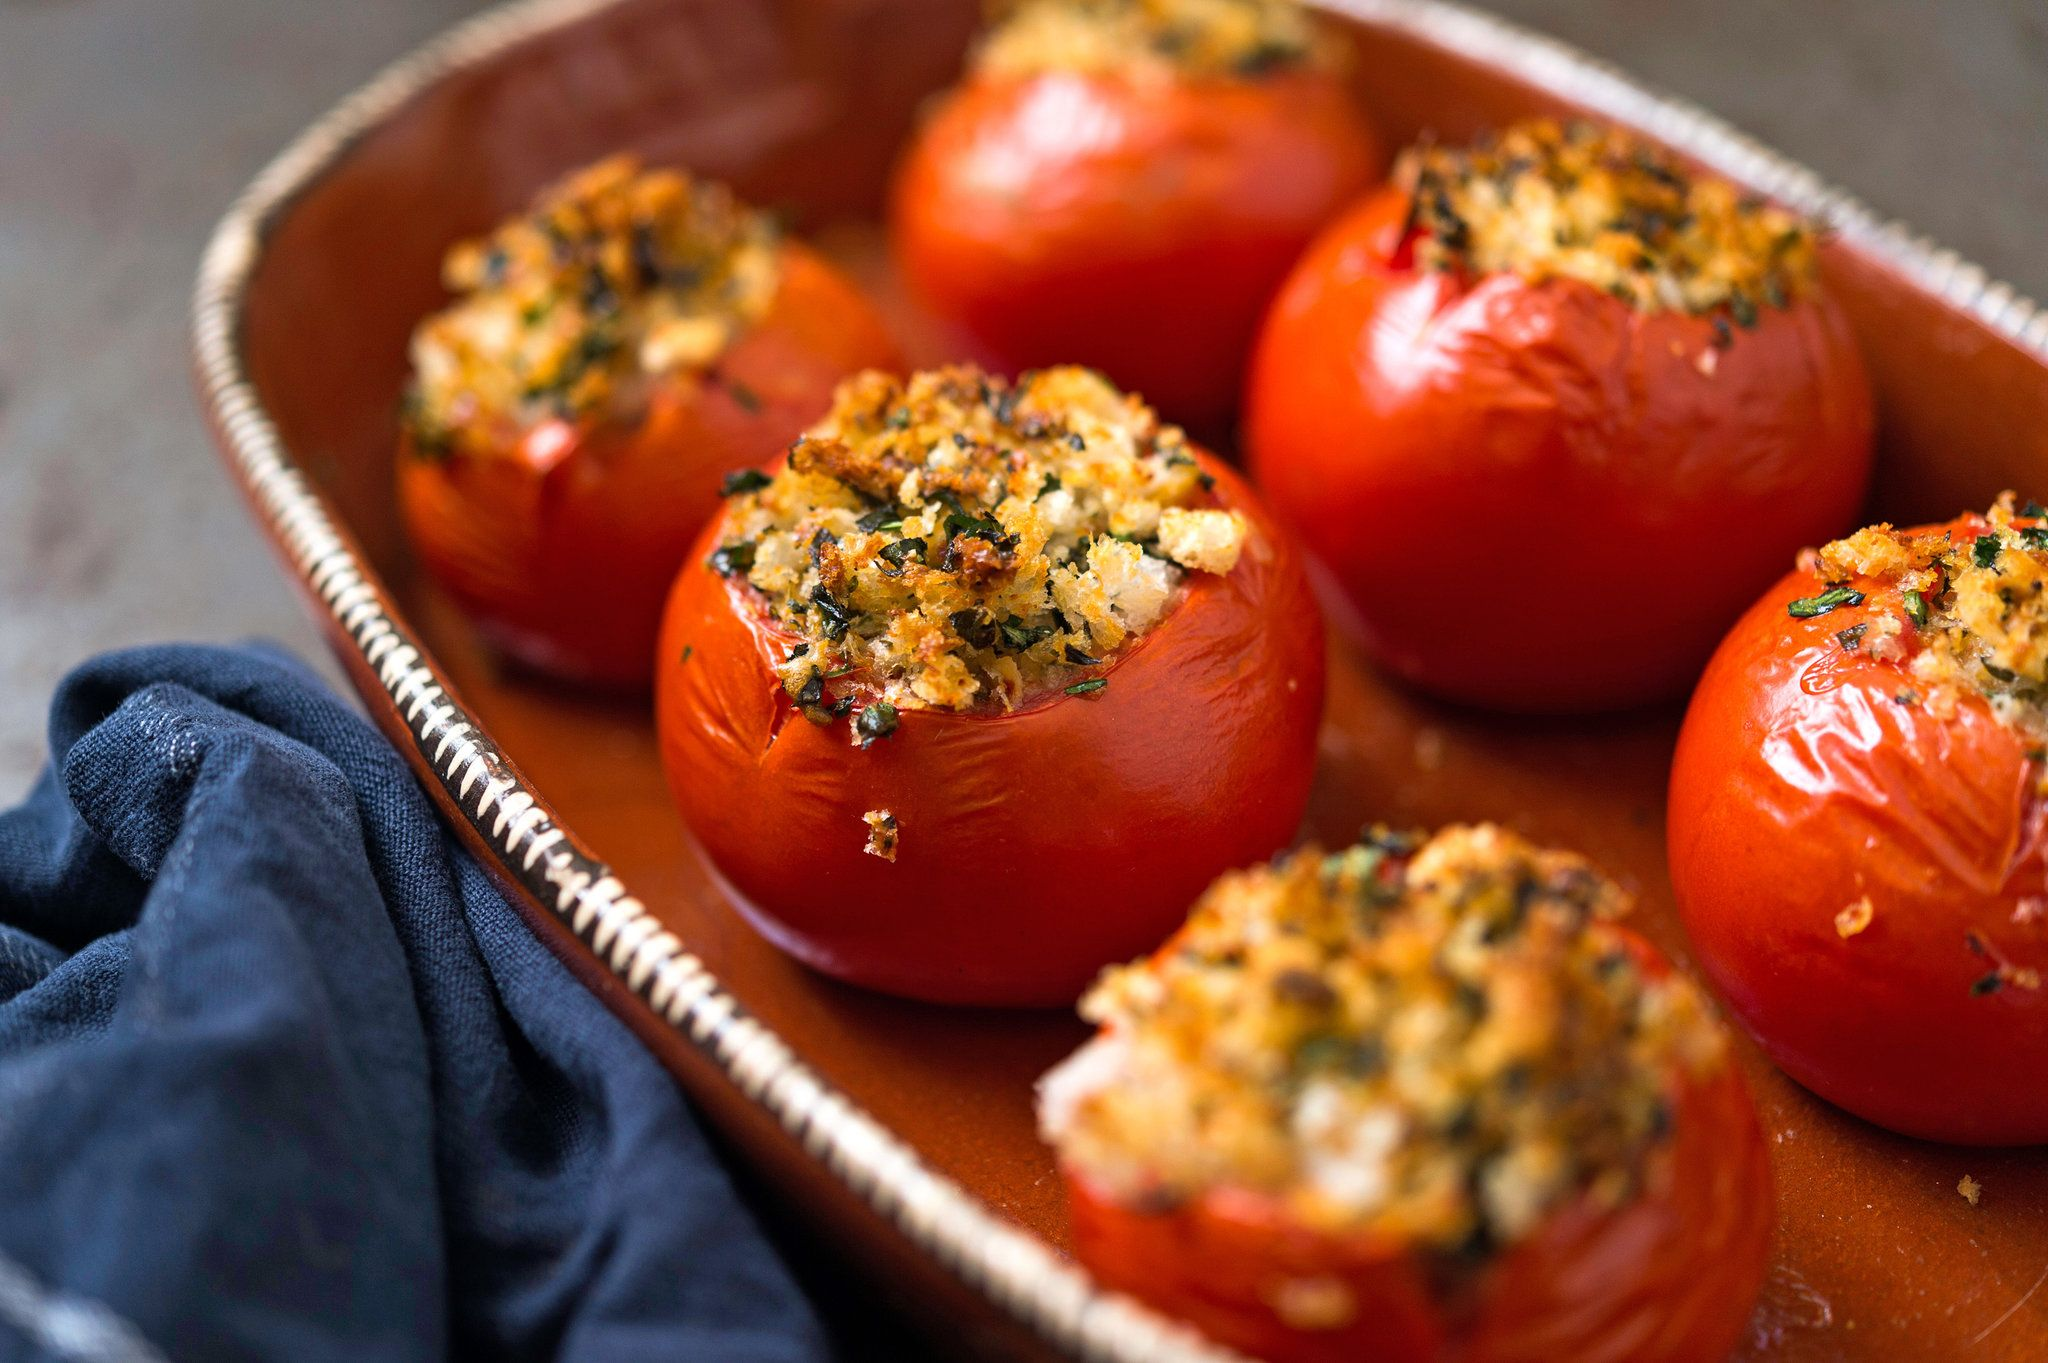 NYT Cooking: A simple mixture of bread crumbs and herbs is all you need to make these Proven�al baked stuffed tomatoes. Serve them with nearly any summer meal, even for breakfast alongside fried eggs.